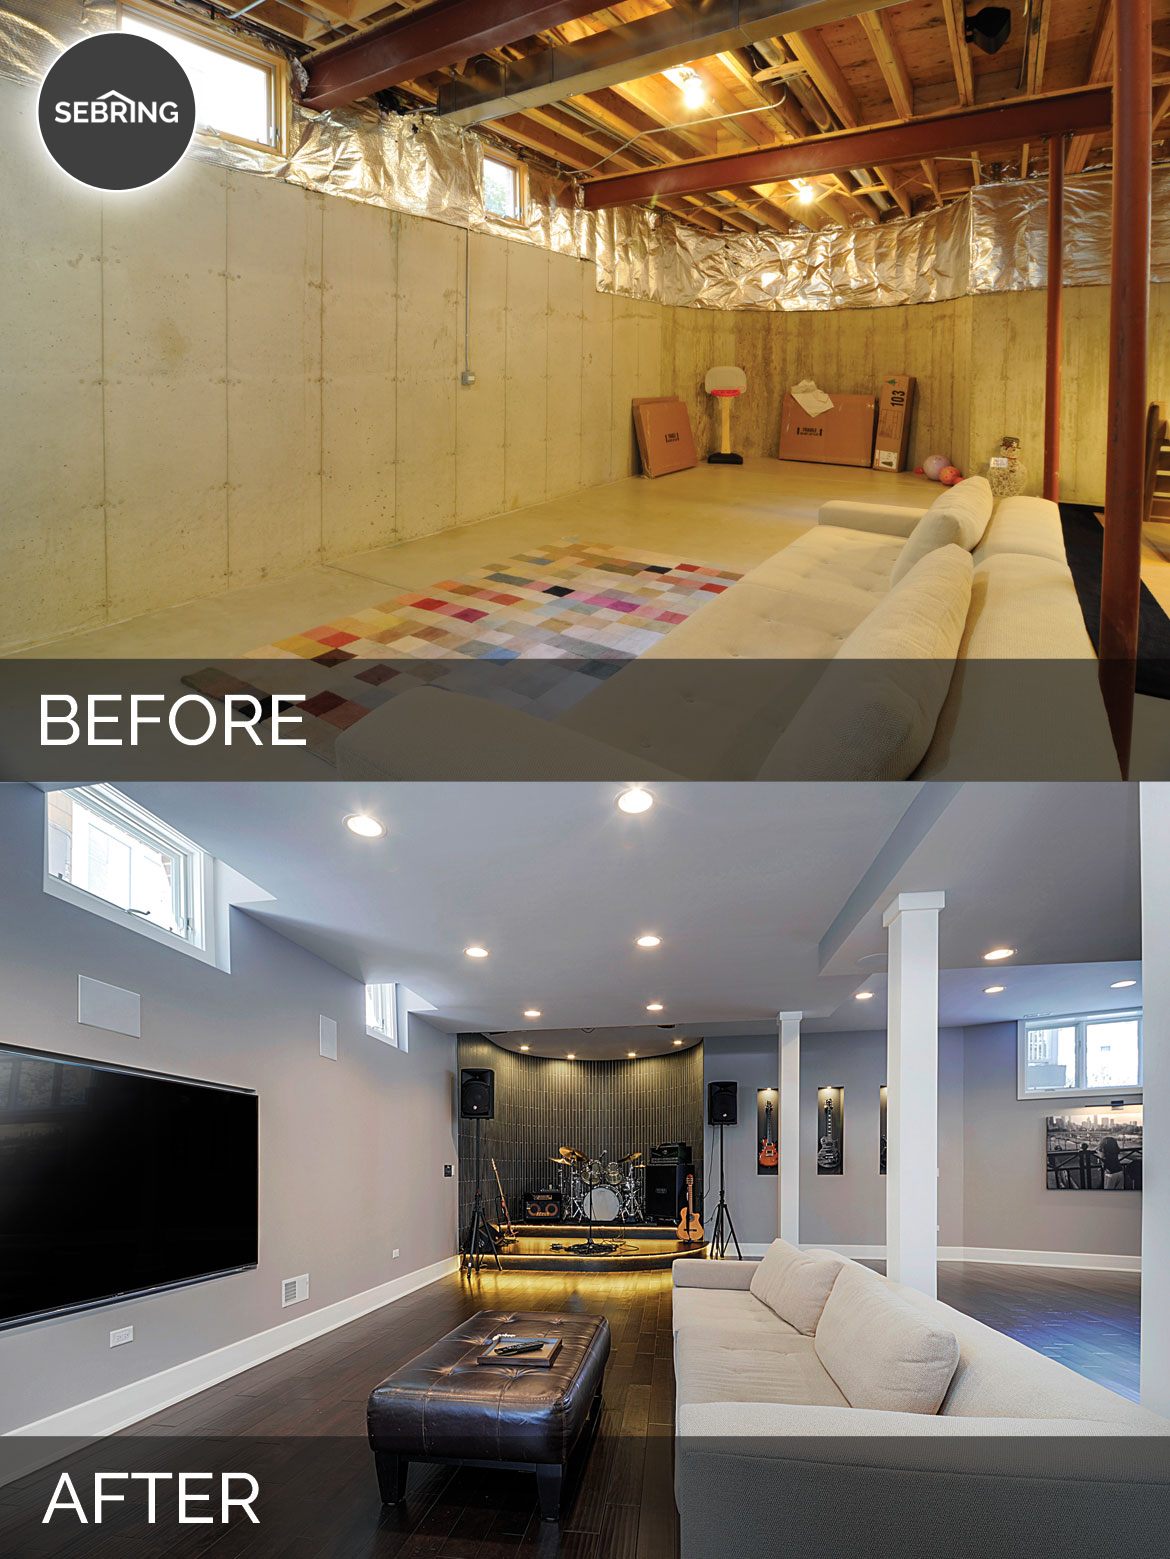 Sidd & Nisha's Basement Before & After Pictures